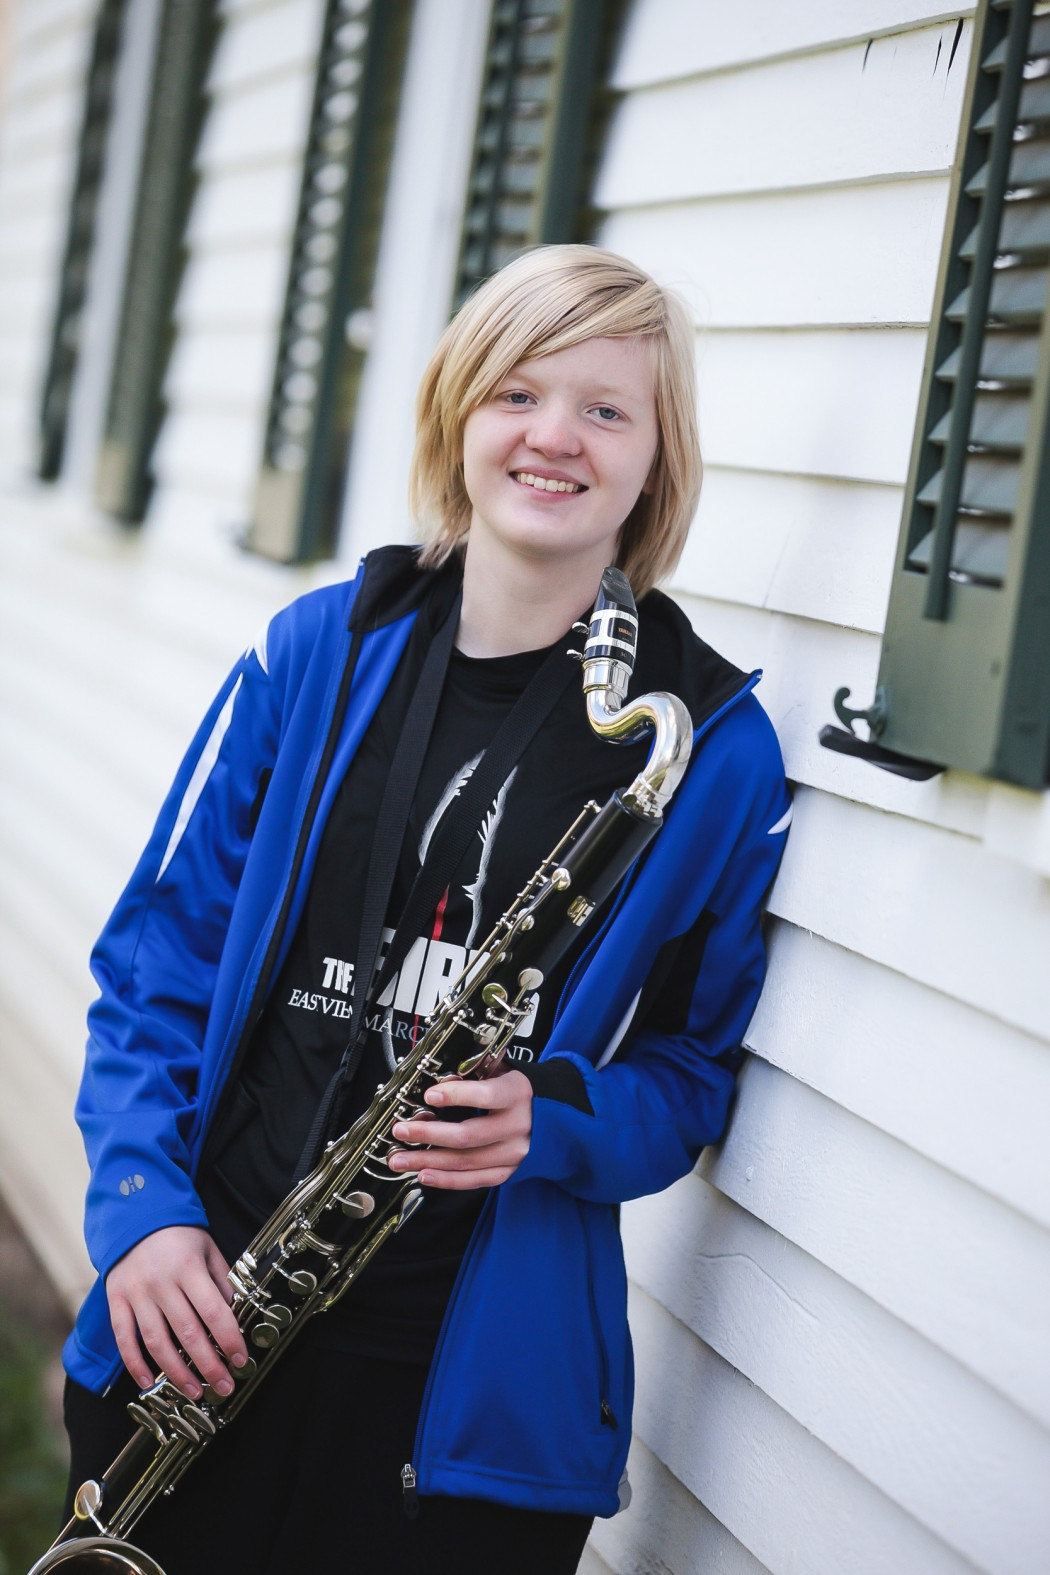 Senior year in high school with bass clarinet